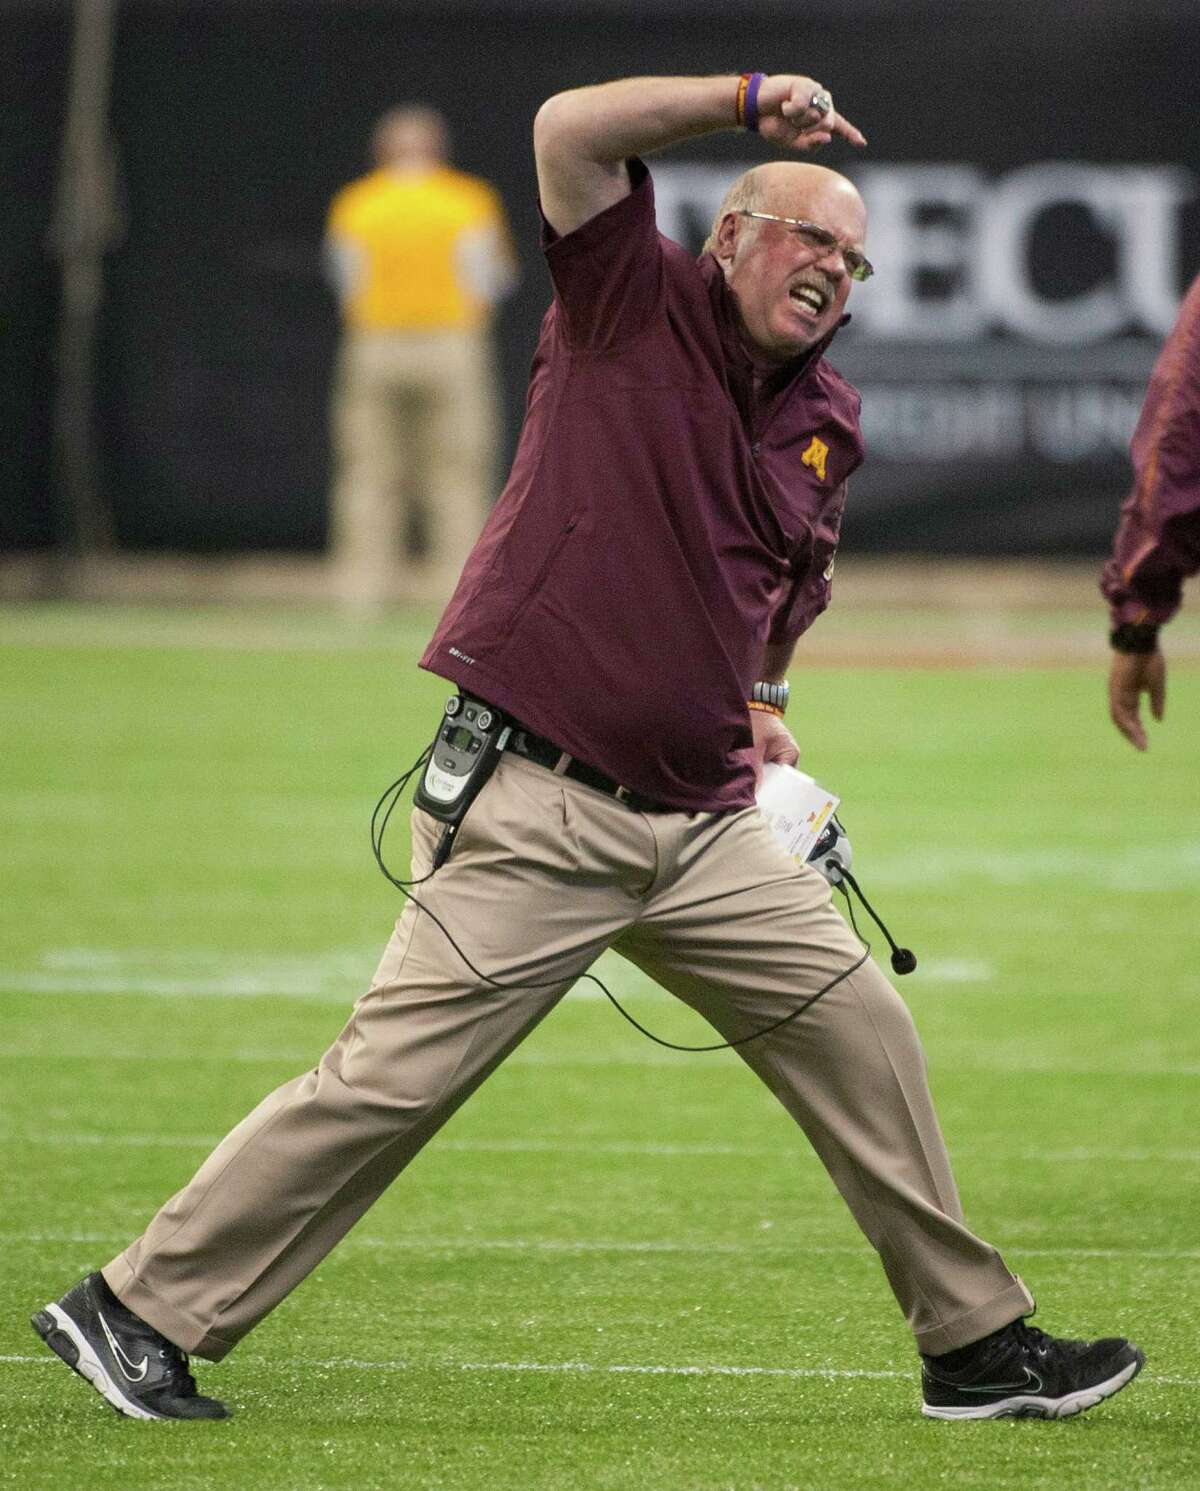 FILE - In this Dec. 28, 2012, file photo, Minnesota coach Jerry Kill reacts to a double penalty during the second quarter against Texas Tech in the Meineke Car Care Bowl NCAA college football game in Houston. Minnesota coach Jerry Kill is retiring because of health reasons, bringing to an abrupt end his efforts to rebuild the Golden Gopher football program. The surprising announcement came one day after Kill missed a scheduled meeting with the media. Kill has epilepsy, and had to take a leave of absence from the team in 2013 while dealing with seizures. (AP Photo/Dave Einsel, File)